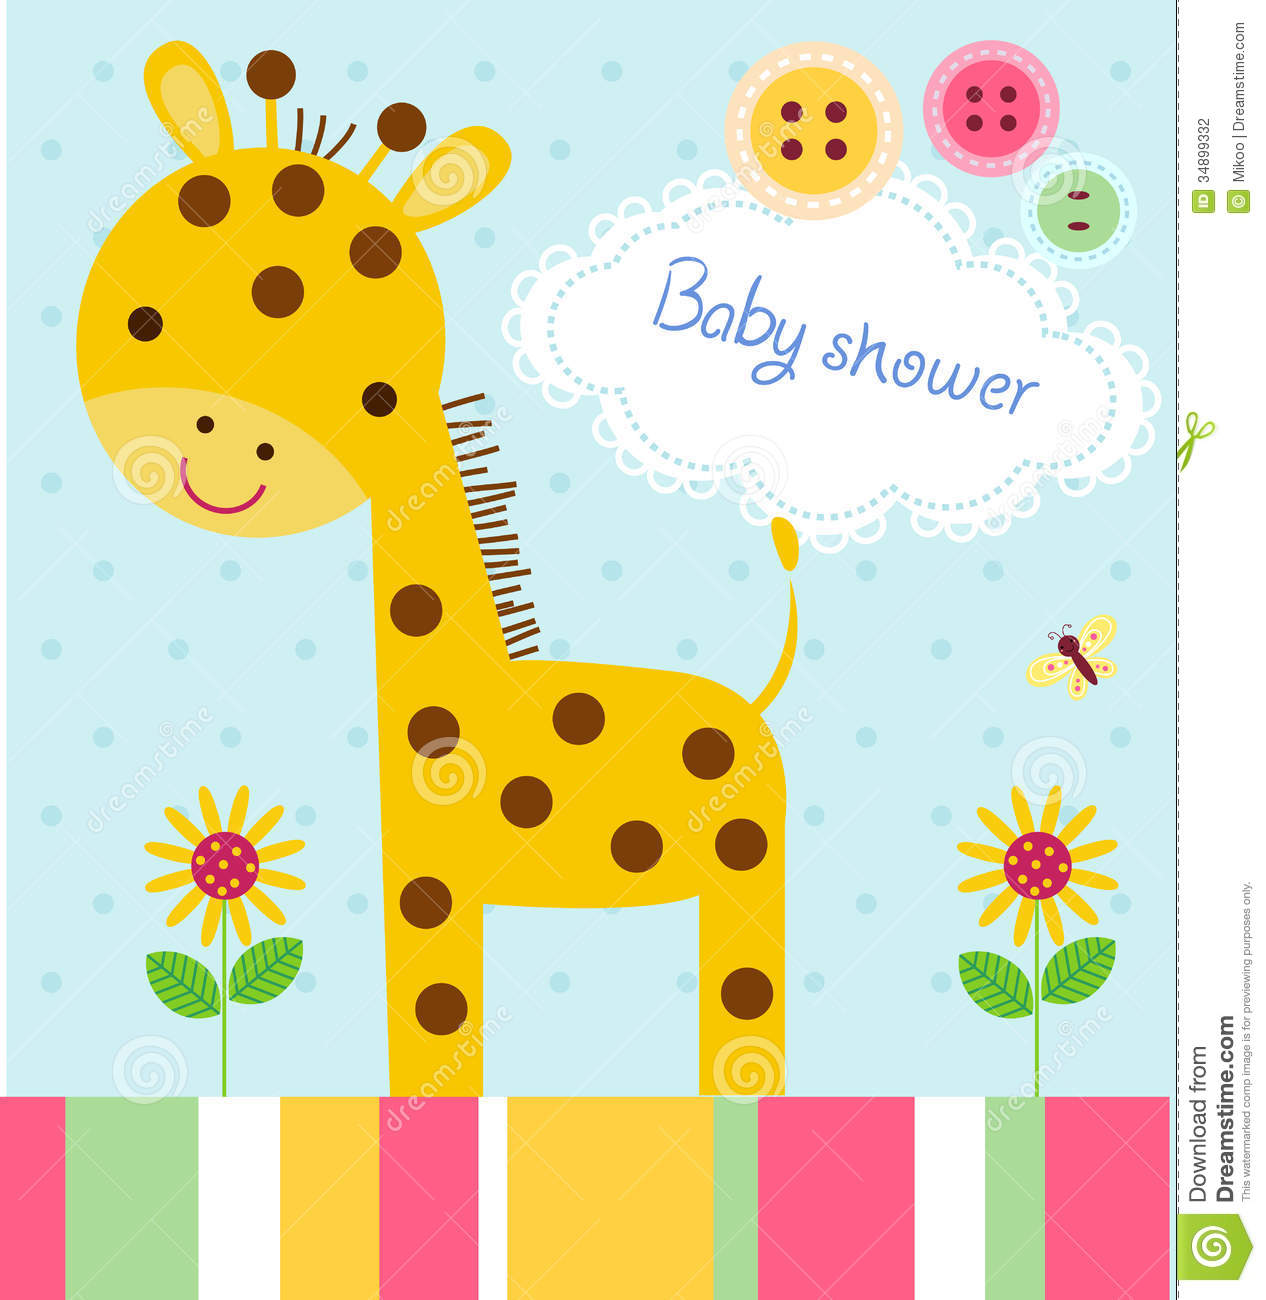 Baby Shower Princess Invitations for awesome invitation template